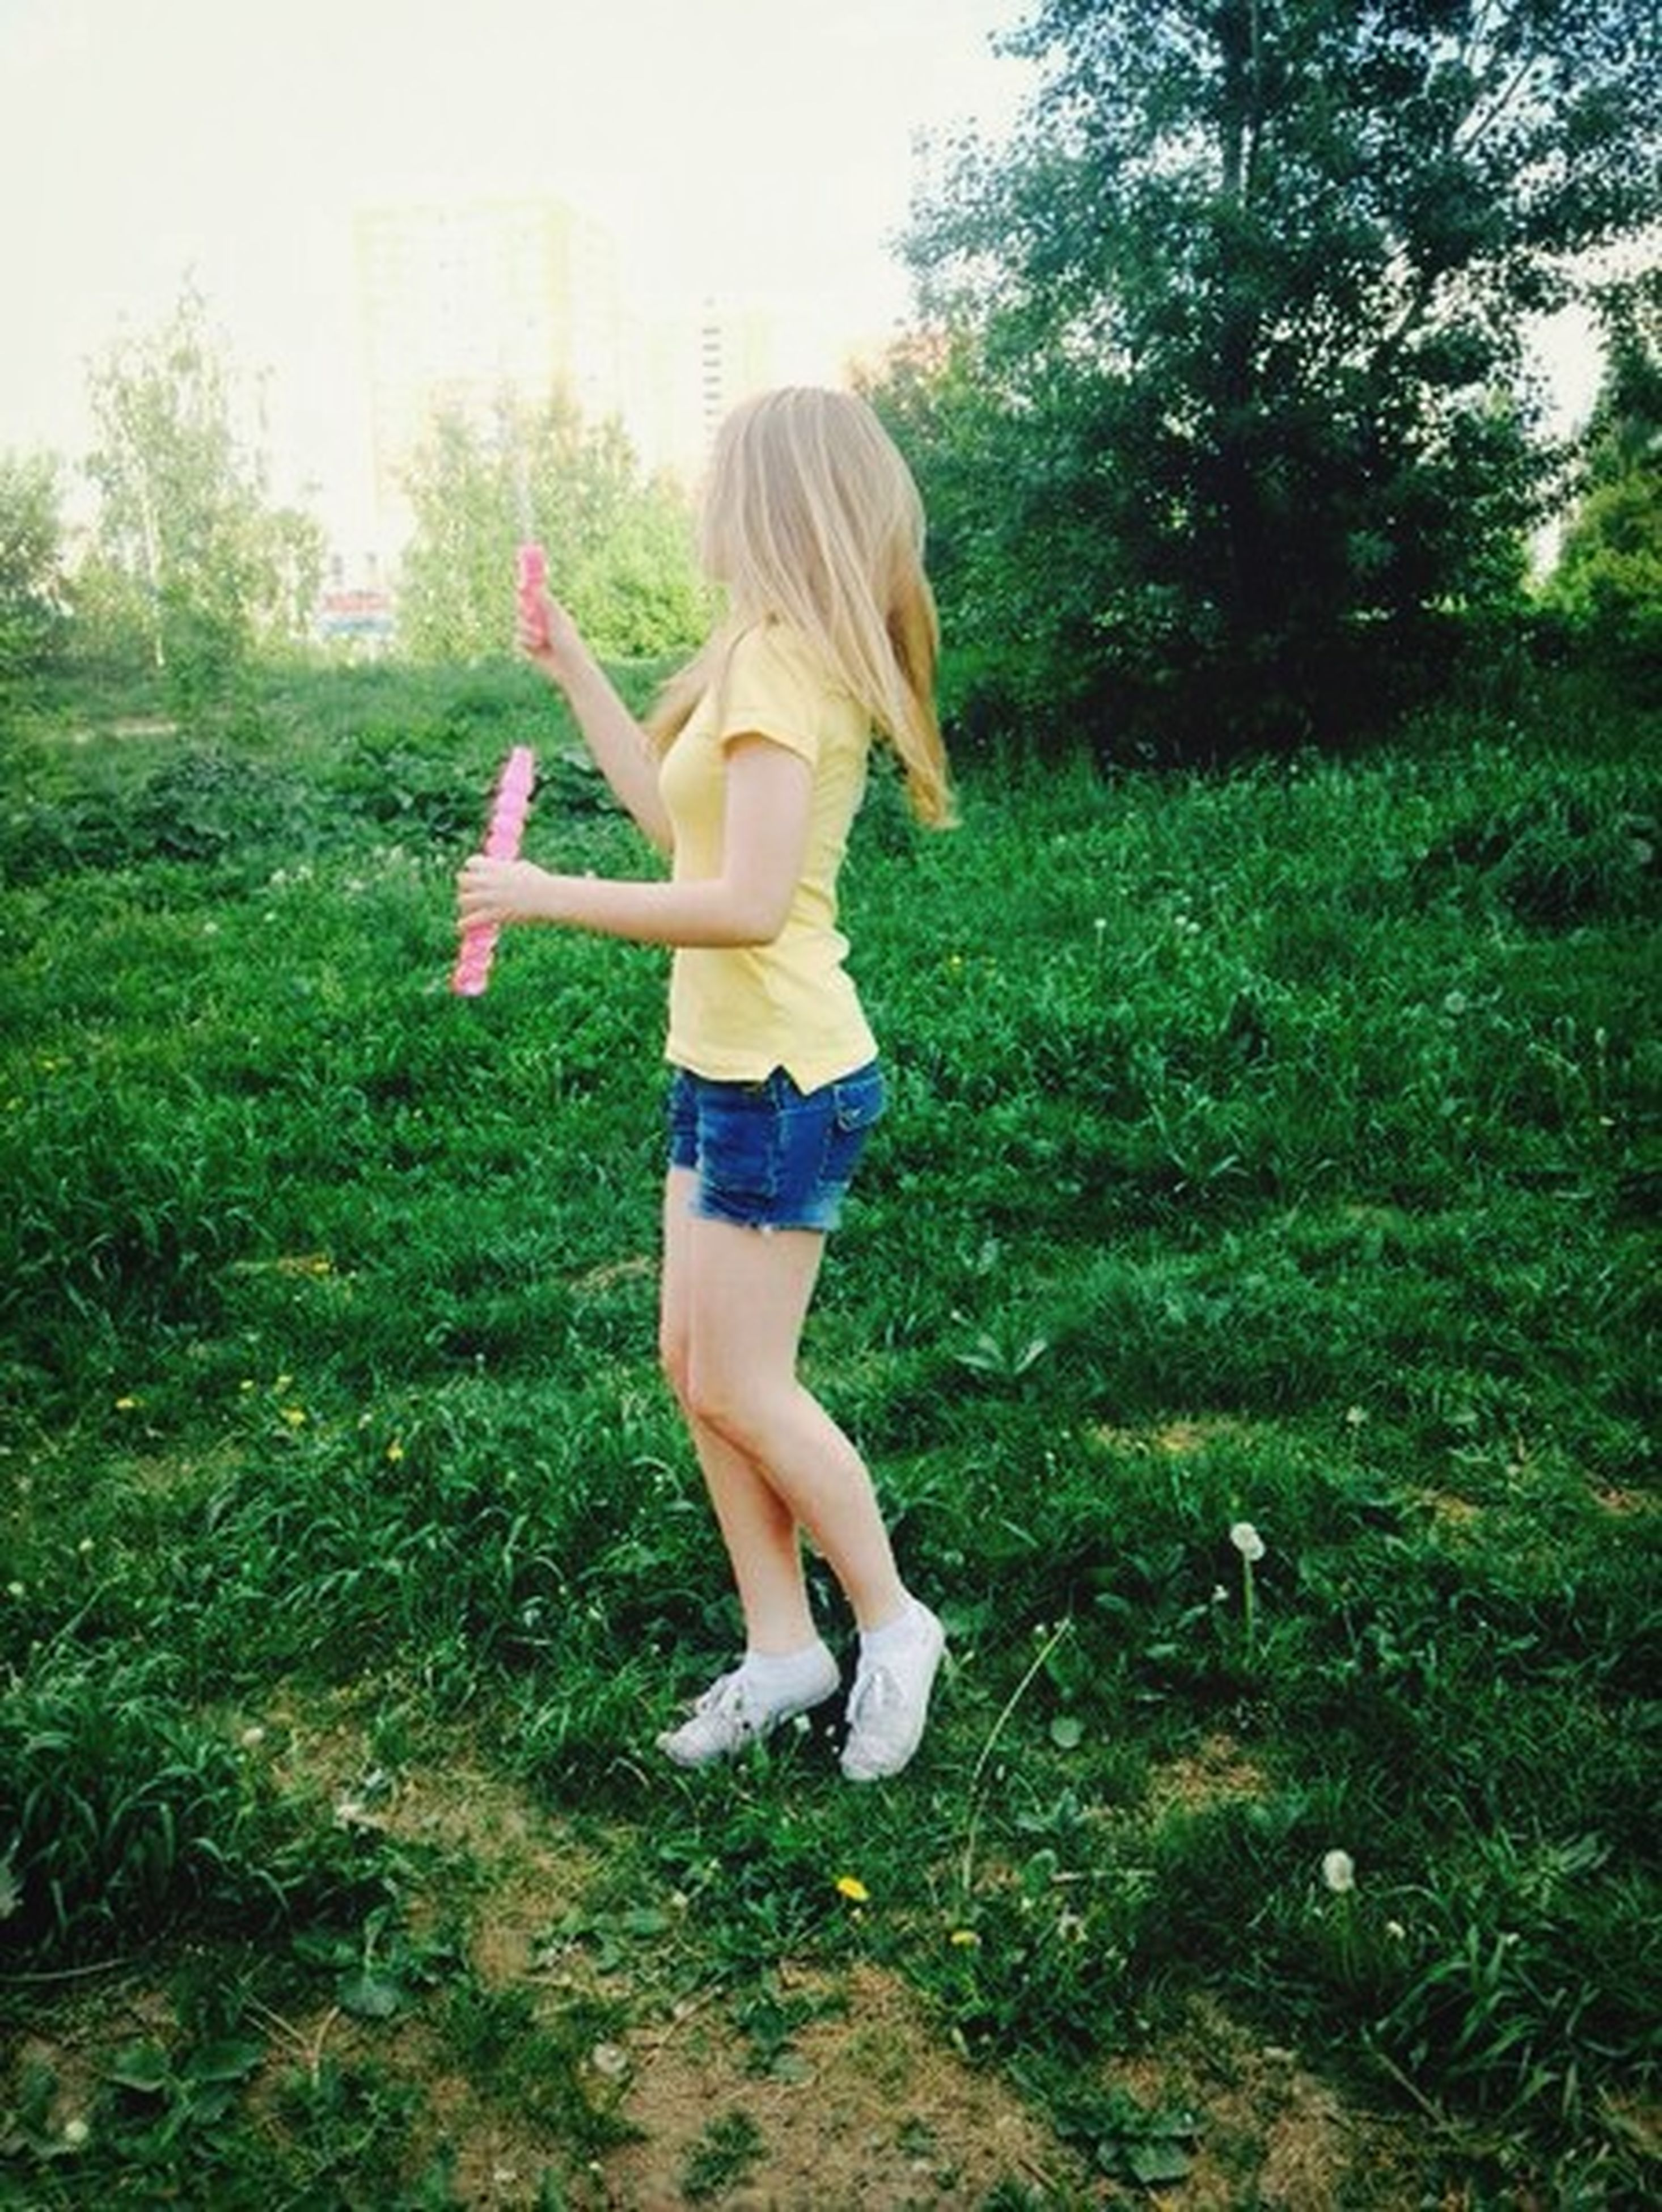 full length, person, grass, casual clothing, lifestyles, young adult, leisure activity, childhood, young women, elementary age, field, girls, standing, fun, grassy, arms outstretched, happiness, three quarter length